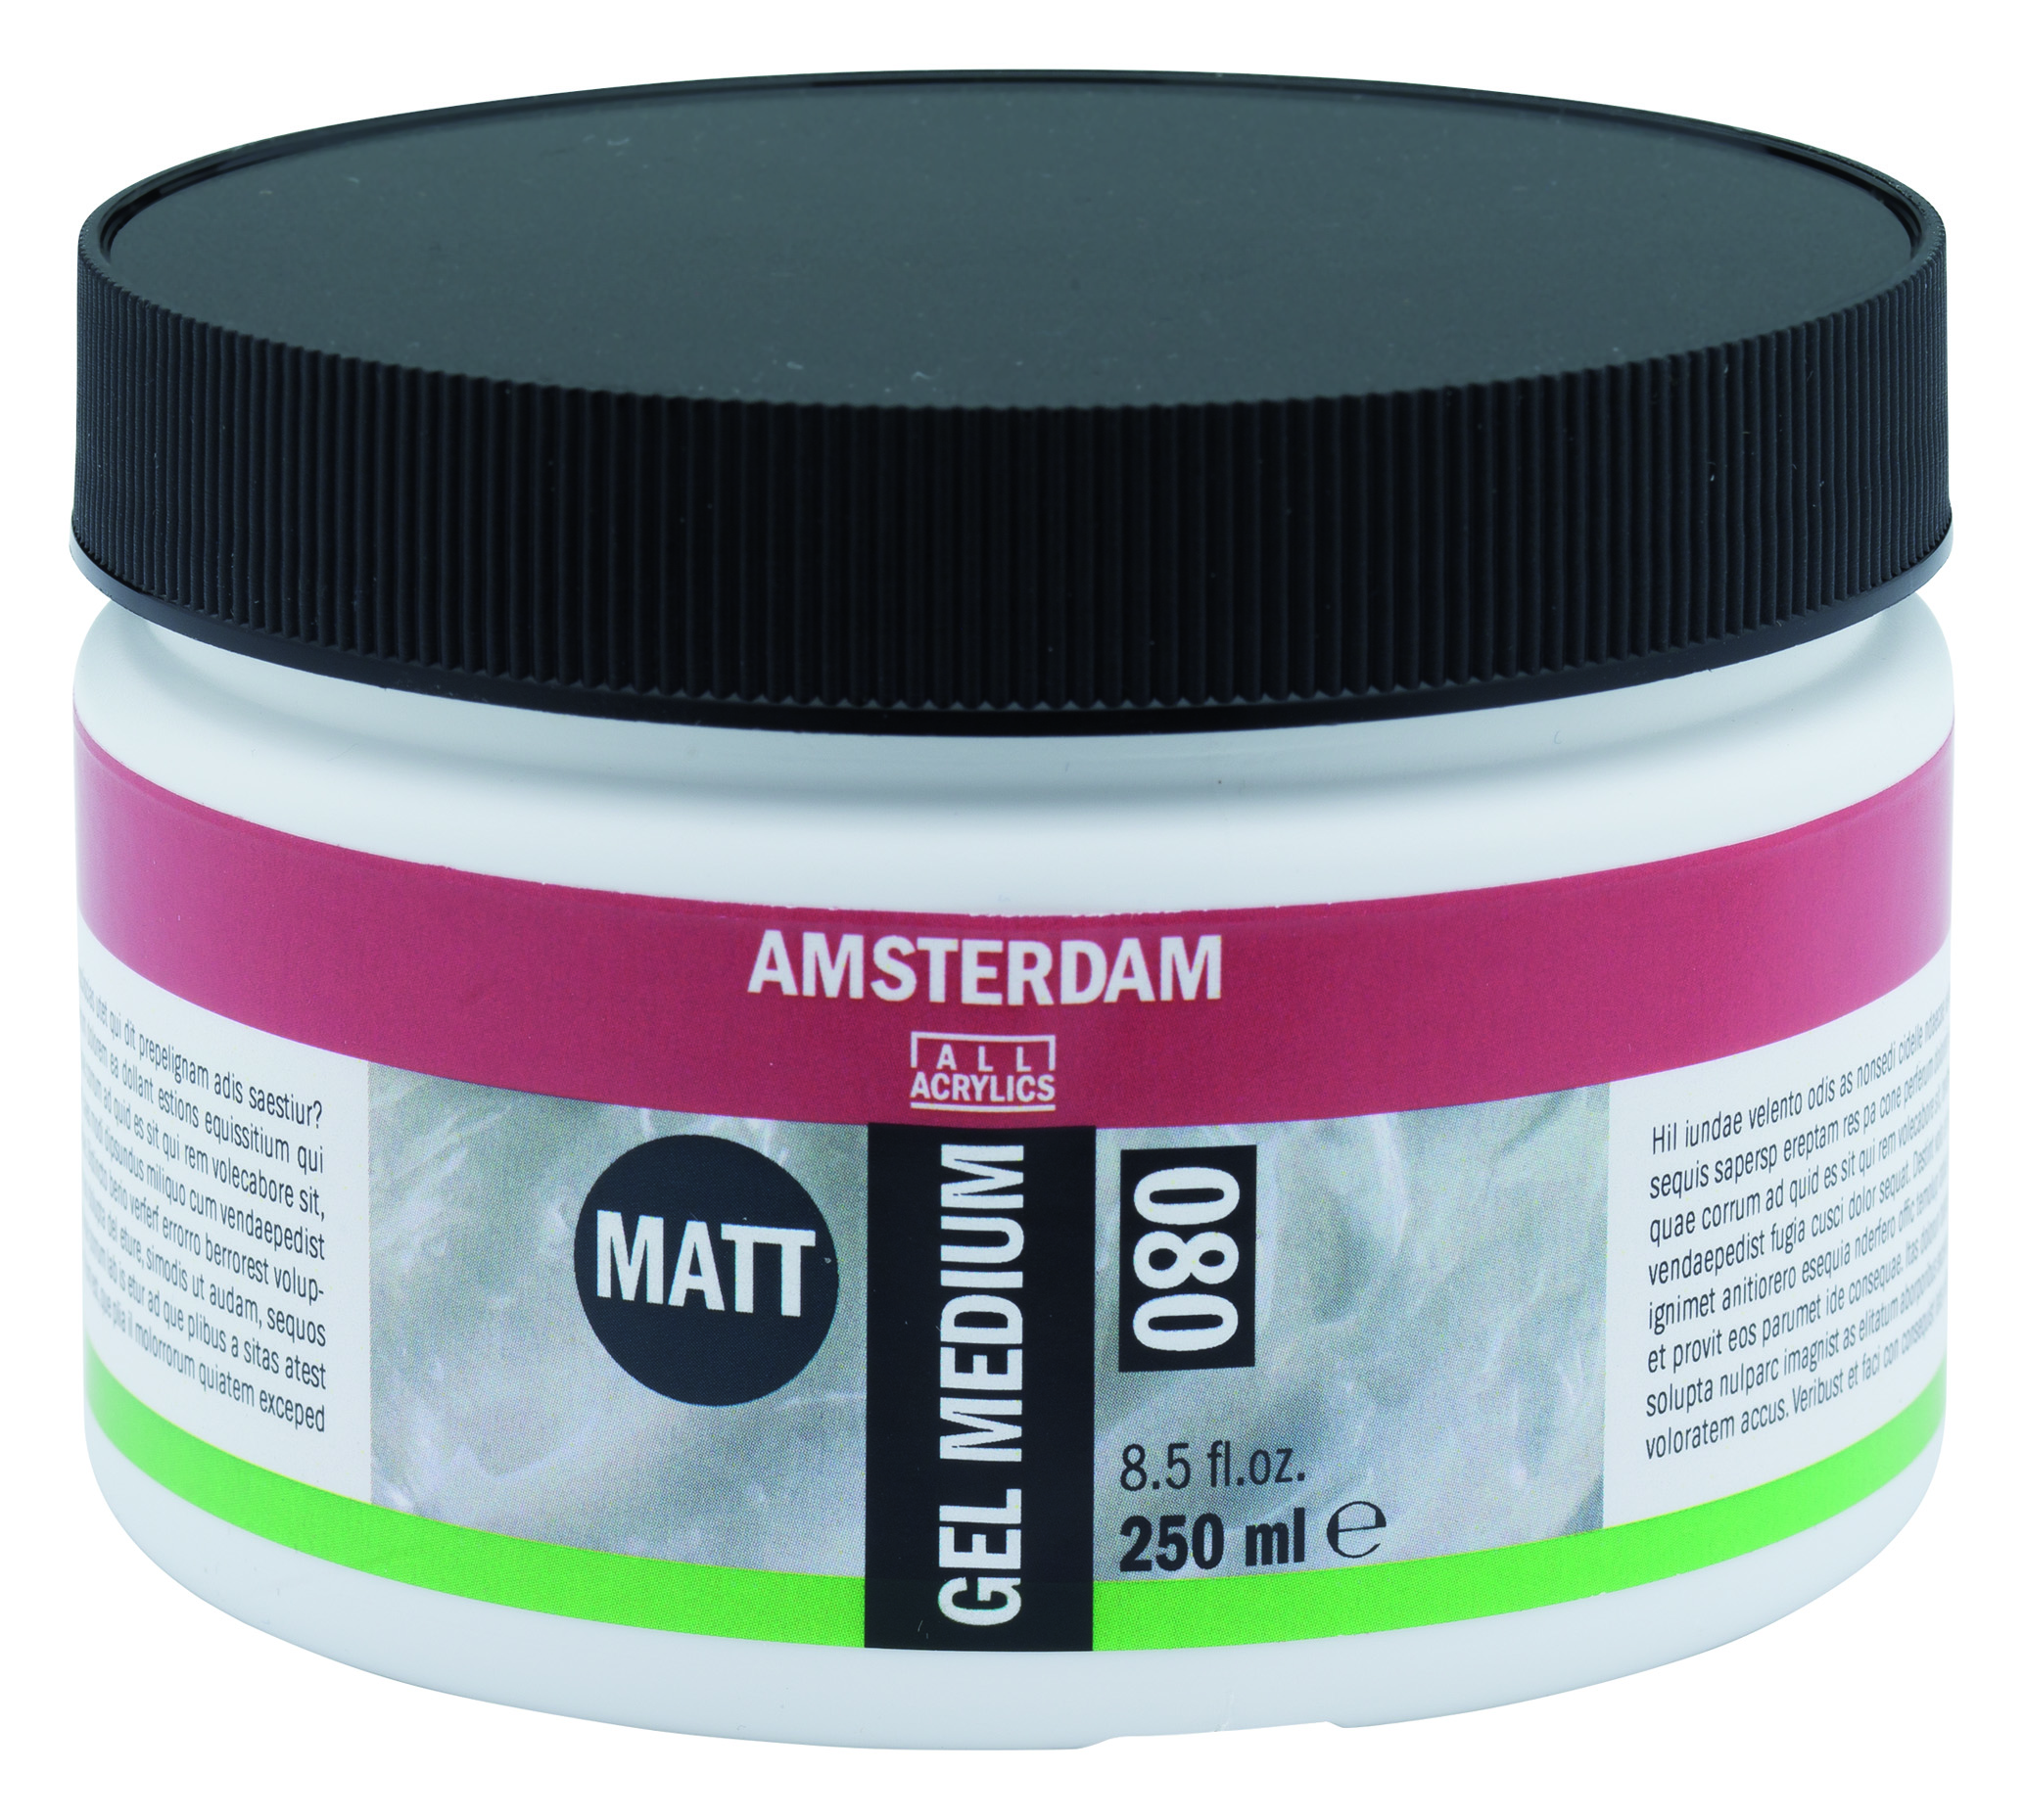 Royal Talens - Amsterdam acrylic gel medium MATT, 250 ml